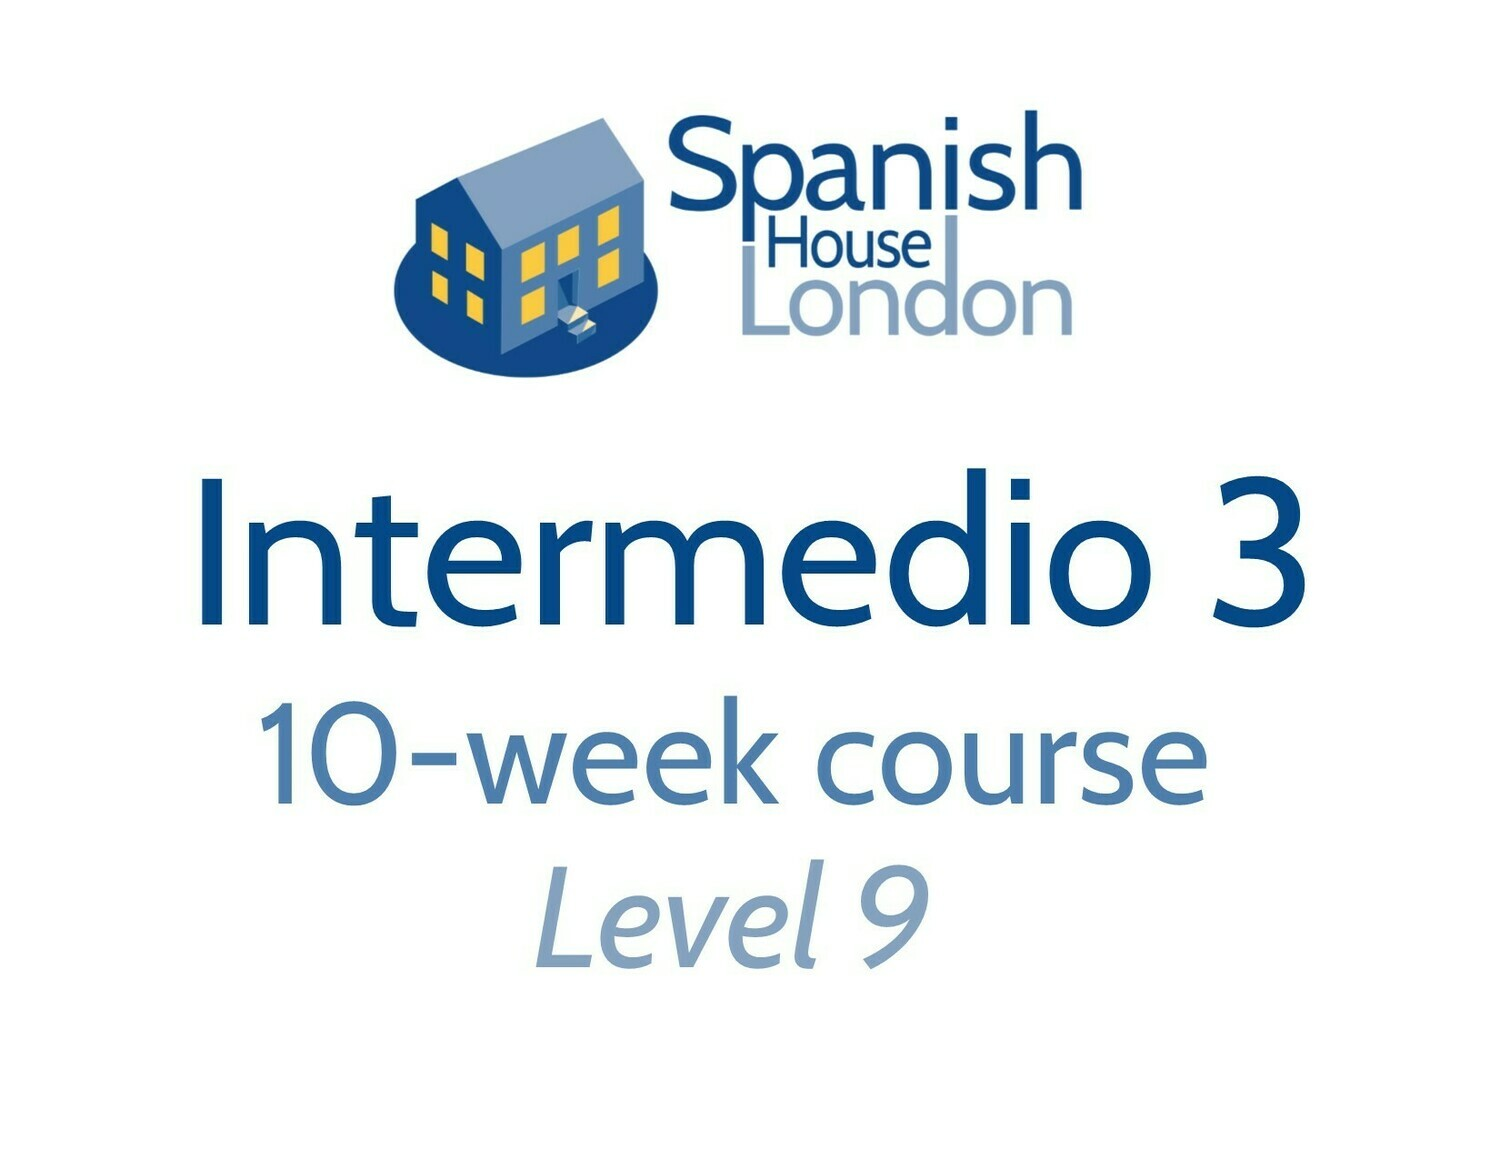 Intermedio 3 Course starting on 3rd September at 7.30pm in Euston